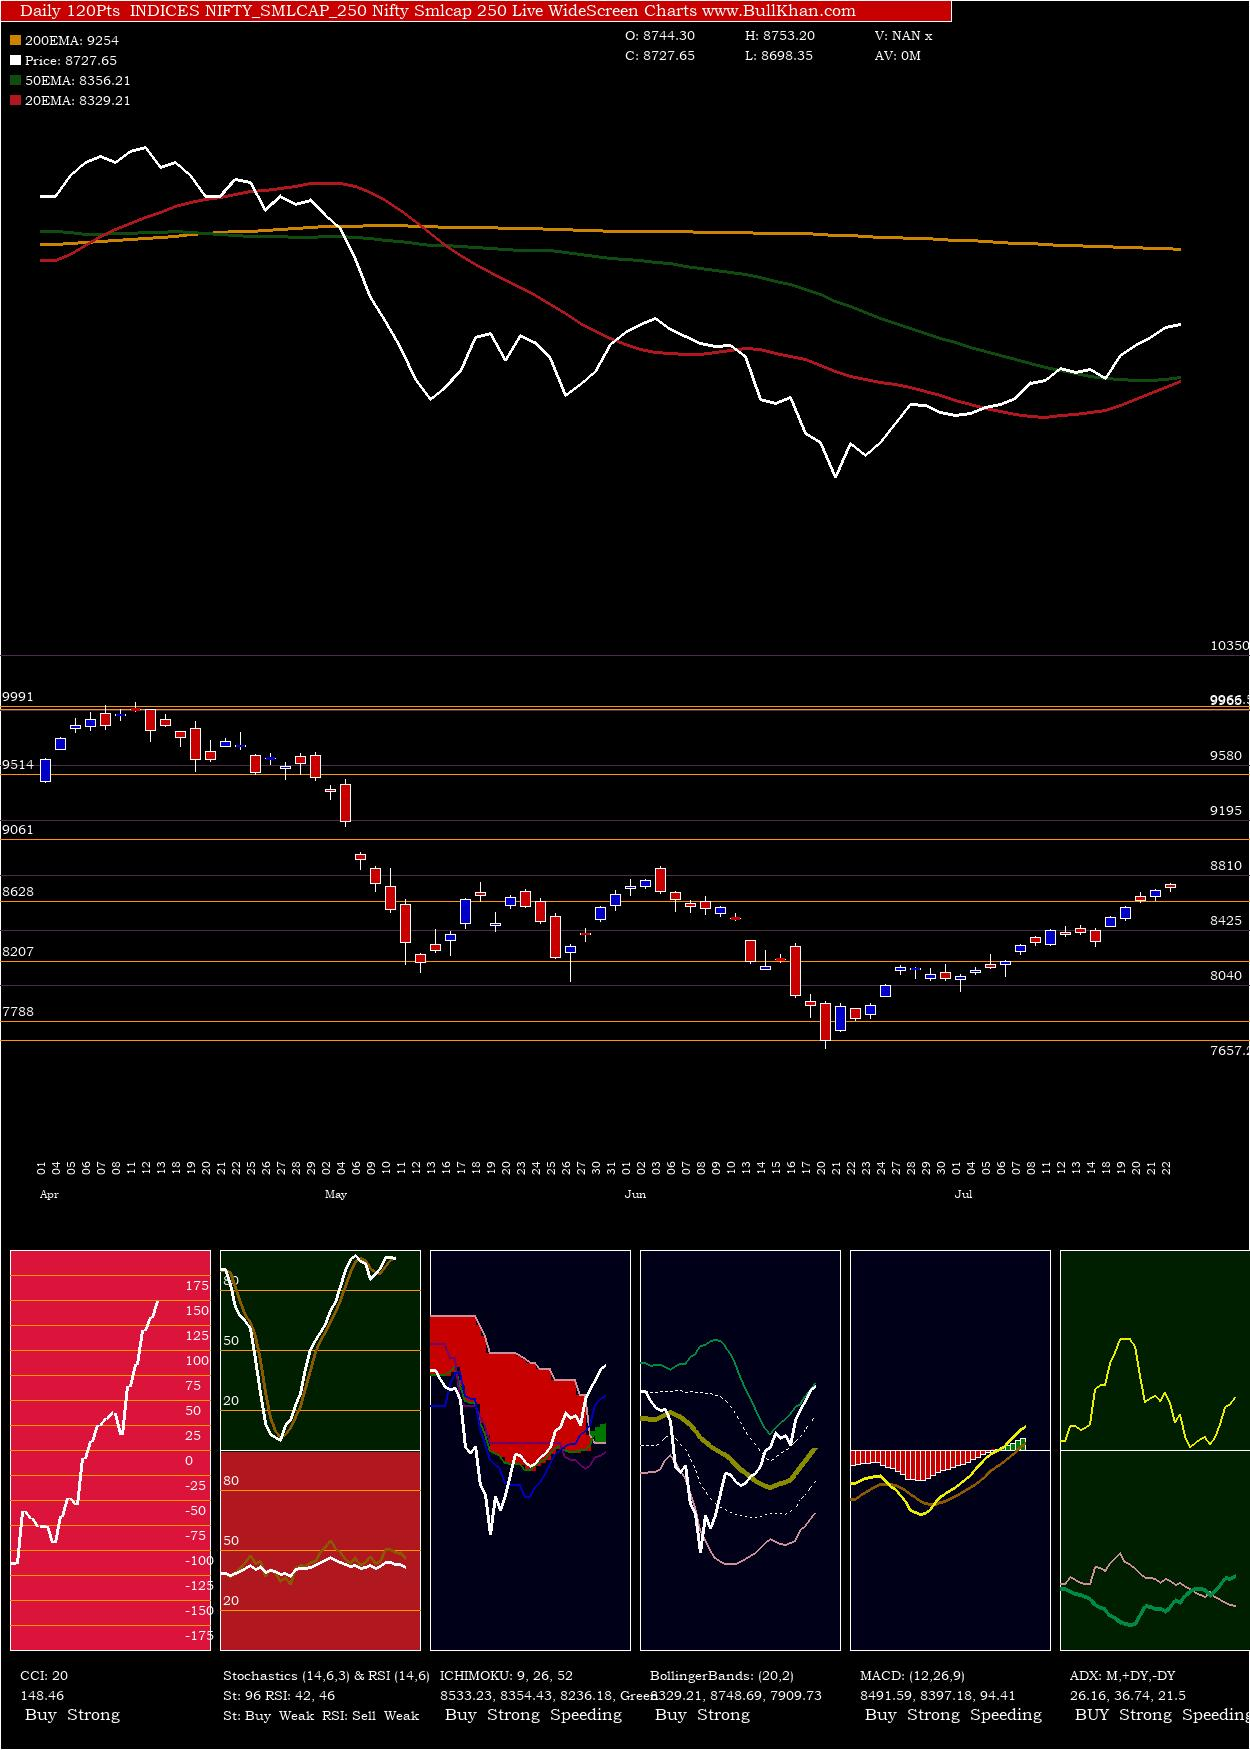 Nifty Smlcap 250 charts and indicators